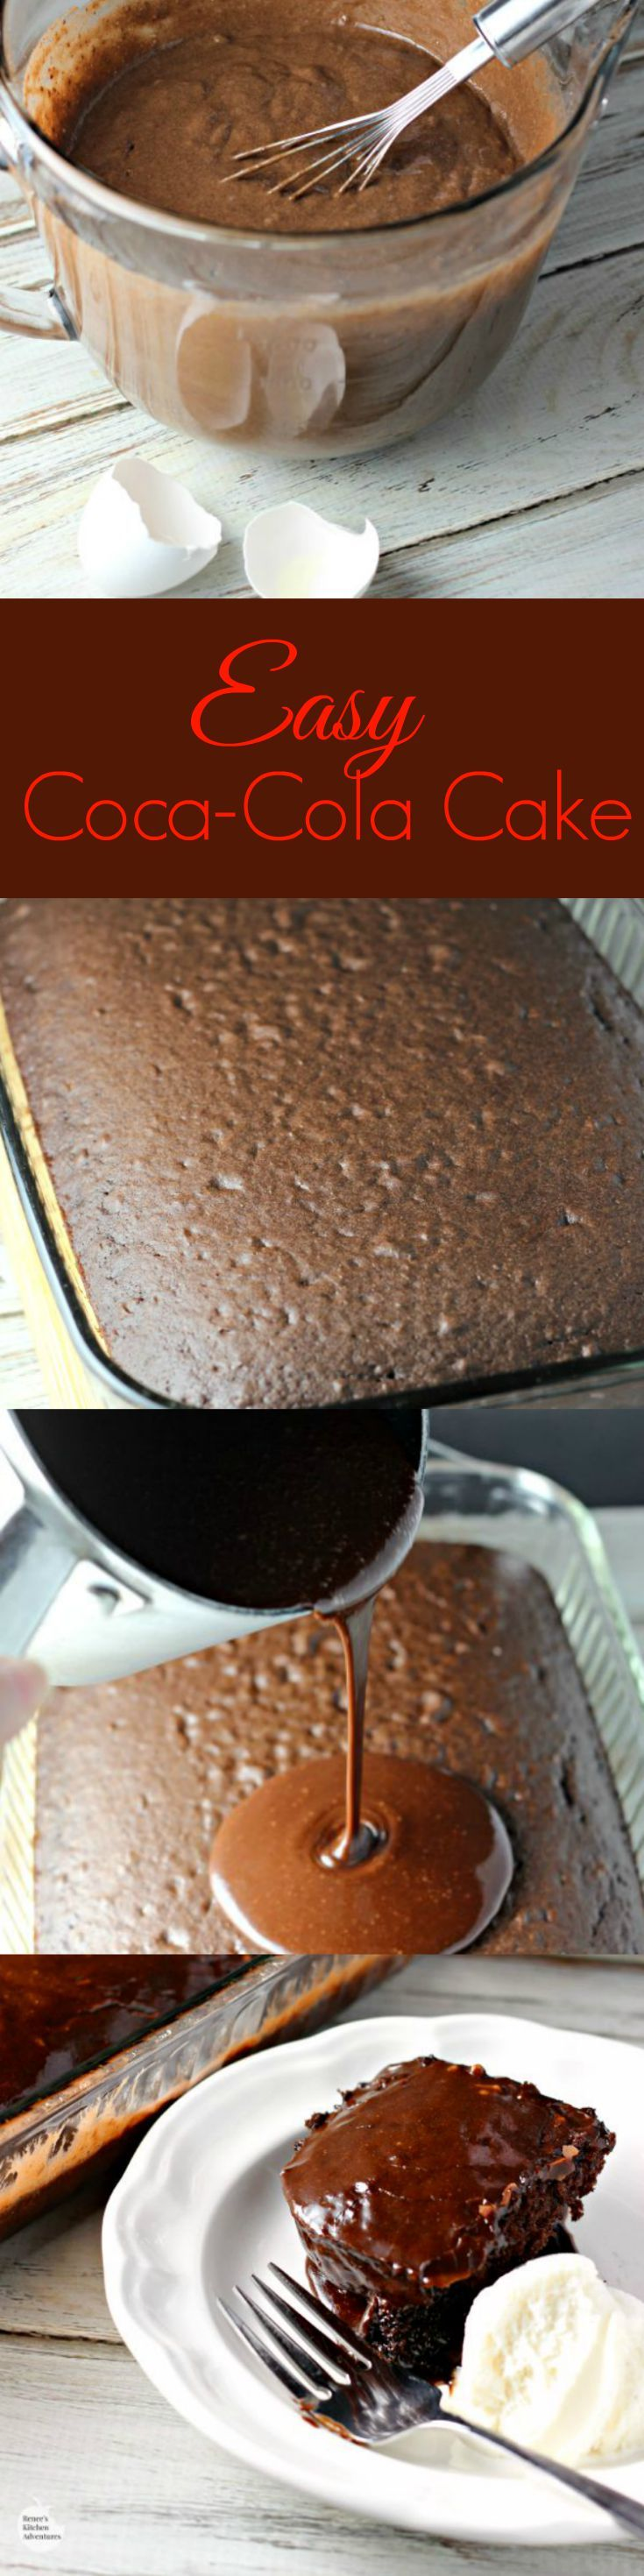 Easy Coca-Cola Cake | by Renee's Kitchen Adventures - Easy recipe for a chocolate cake dessert any day of the week! #EffortlessMeals #ad